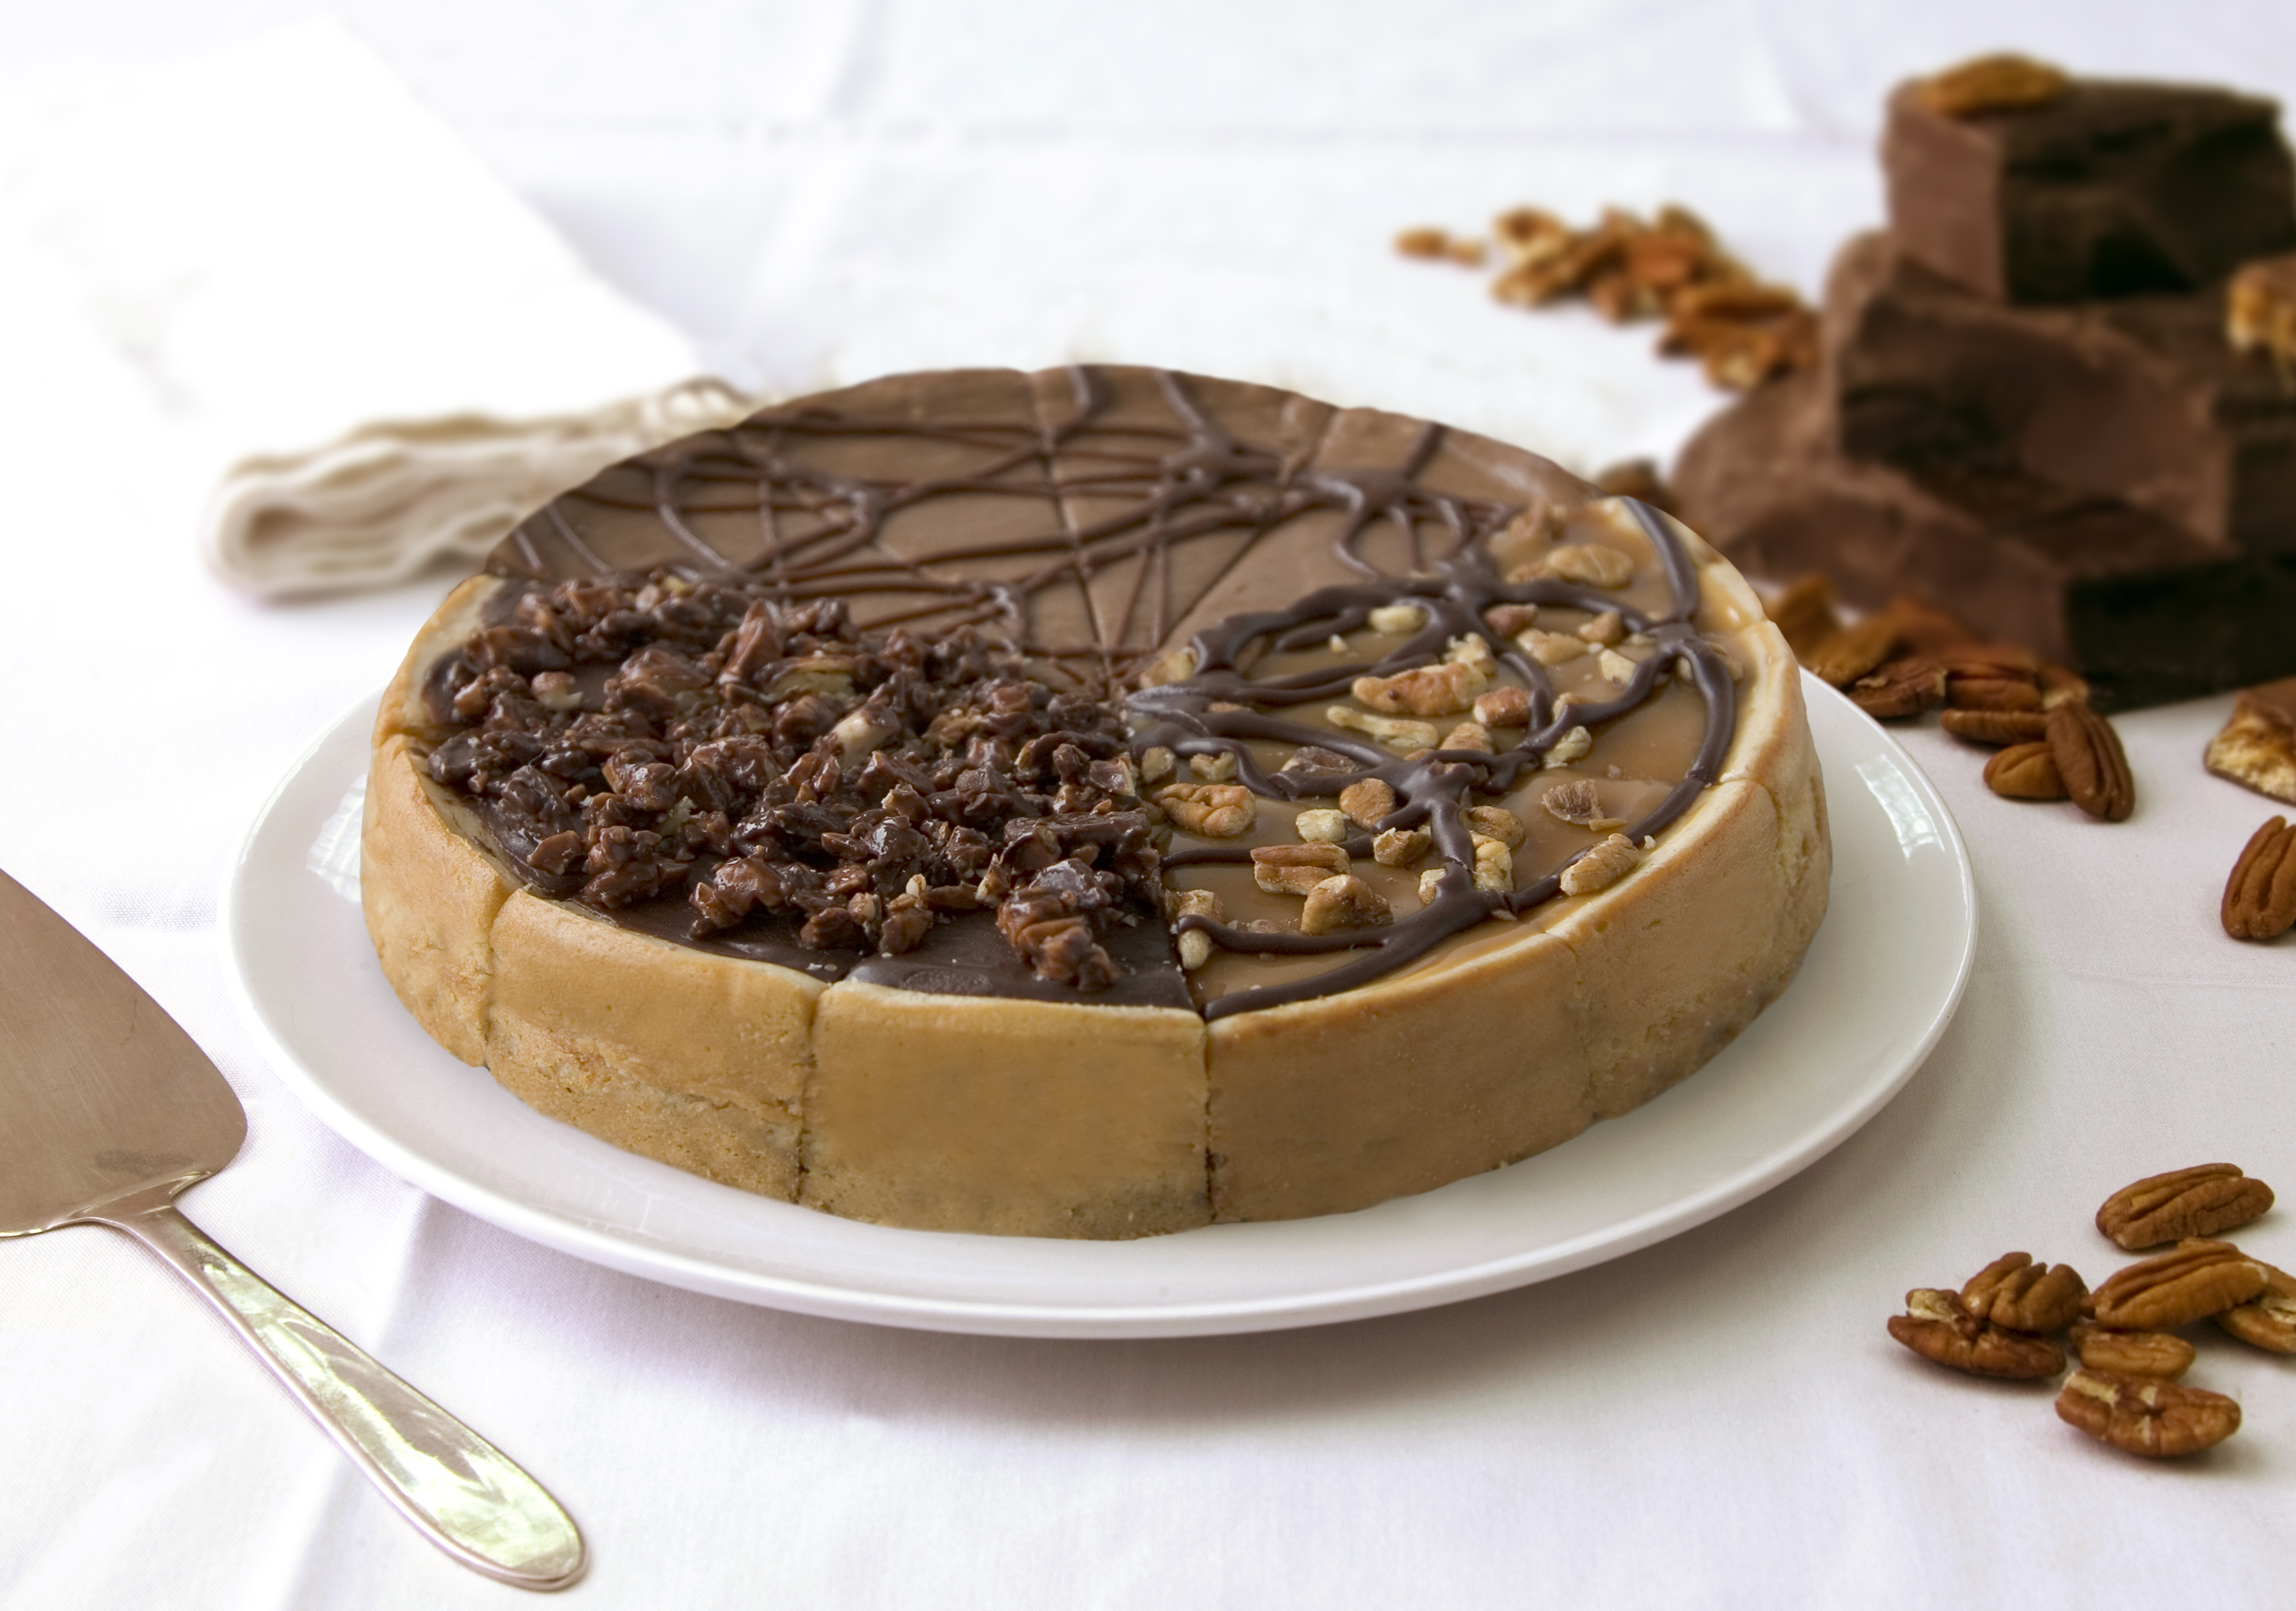 "Candy Sampler Cheesecake 7"" (4 slices each of 3 flavors: Hershey's Choc/Turtle/Heath Bar)"